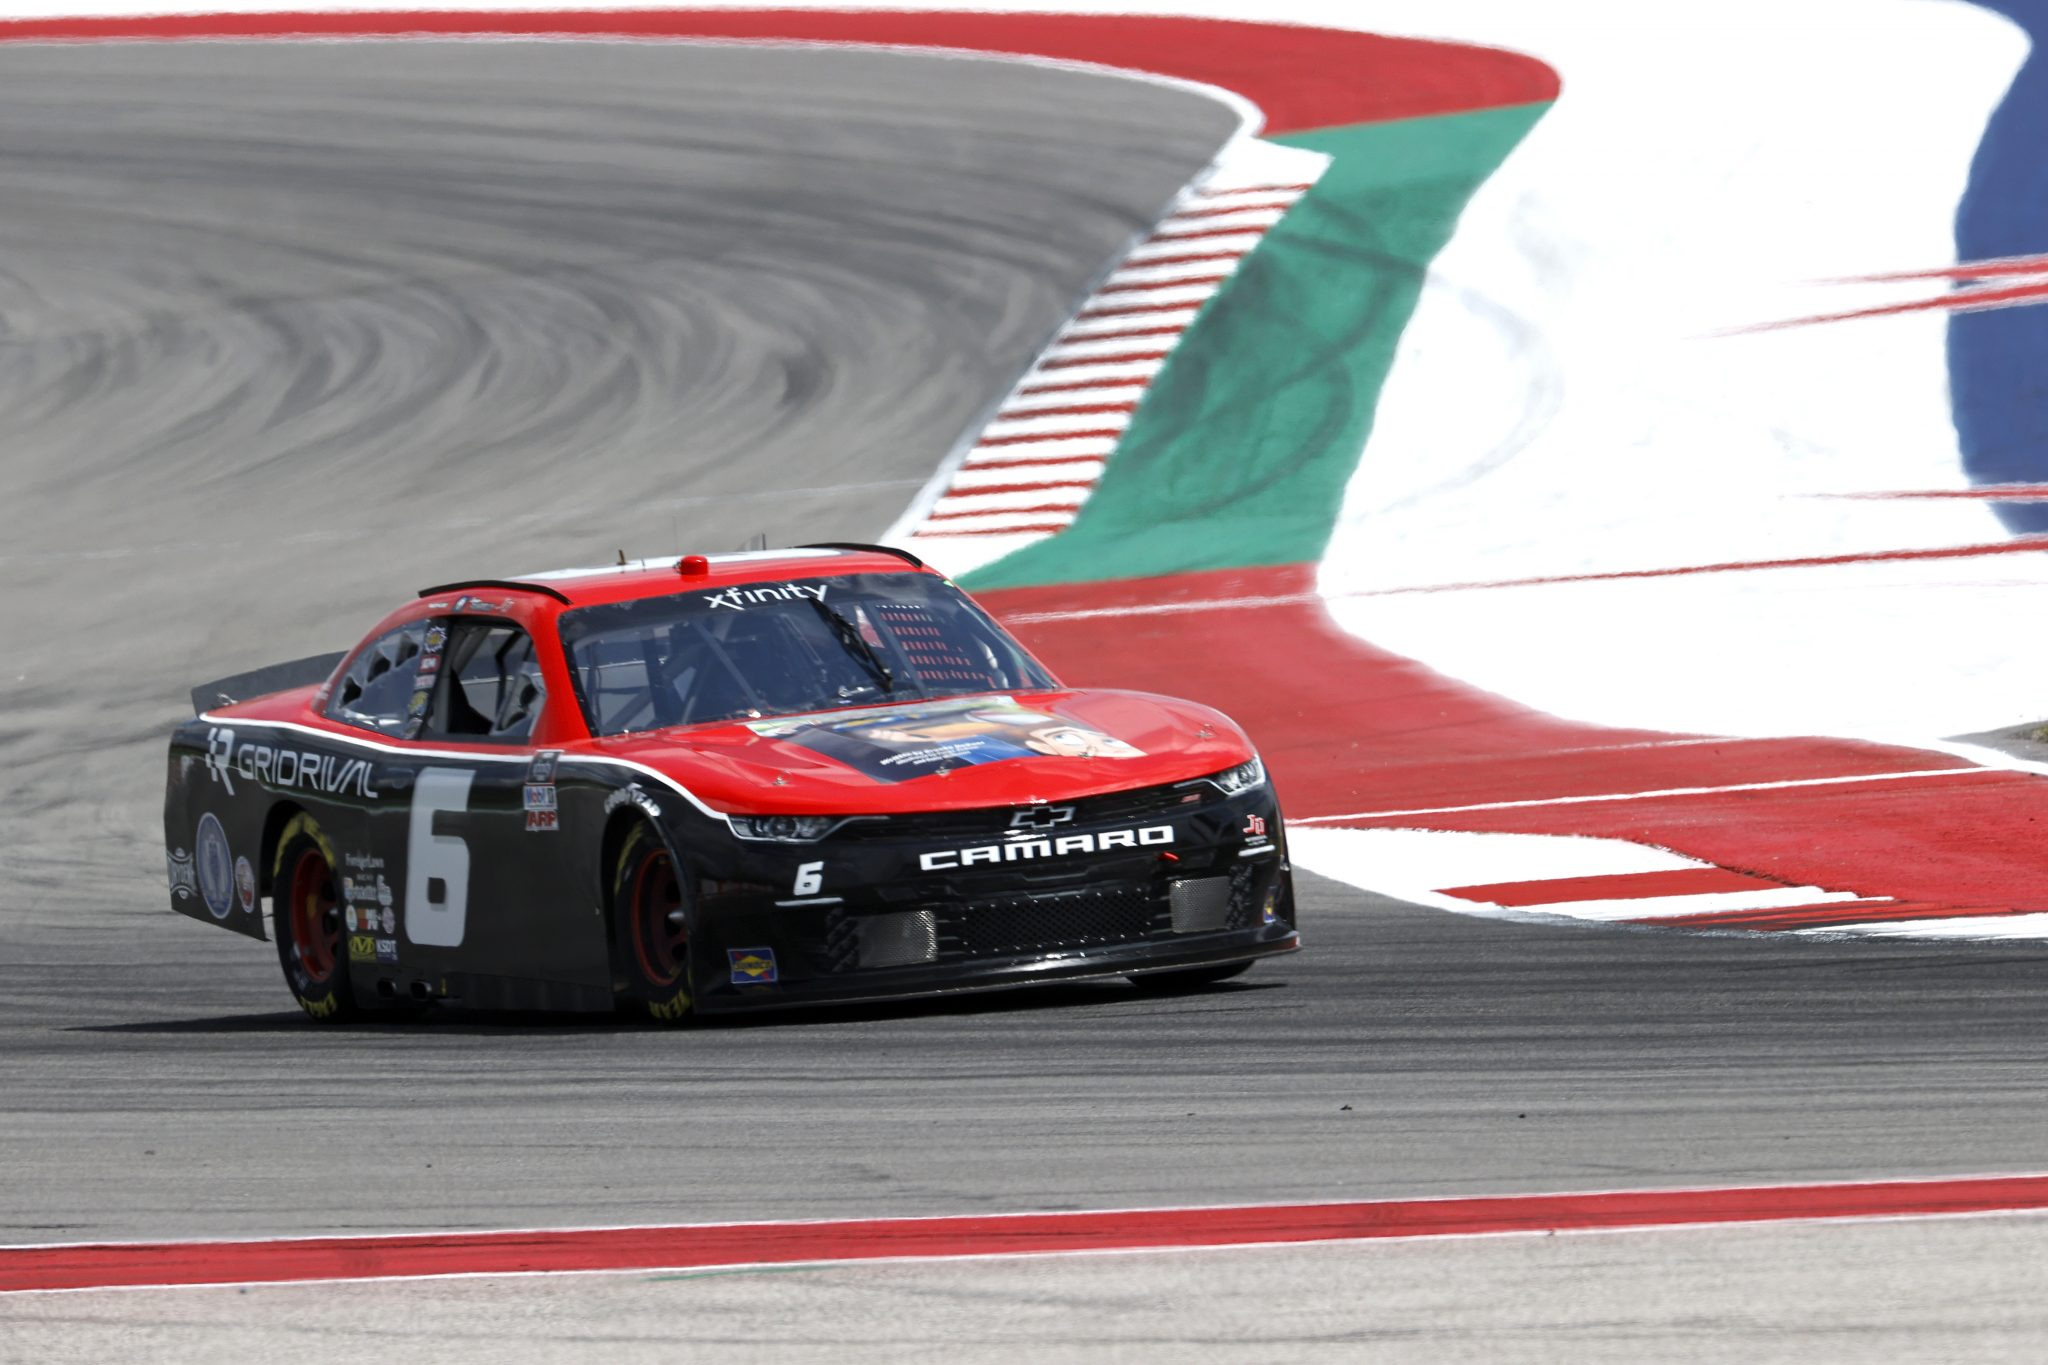 AUSTIN, TEXAS - MAY 21: Spencer Pumpelly, driver of the #6 Fast Life/GridRival Chevrolet, drives during practice for the NASCAR Xfinity Series Pit Boss 250 at Circuit of The Americas on May 21, 2021 in Austin, Texas. (Photo by Chris Graythen/Getty Images) | Getty Images